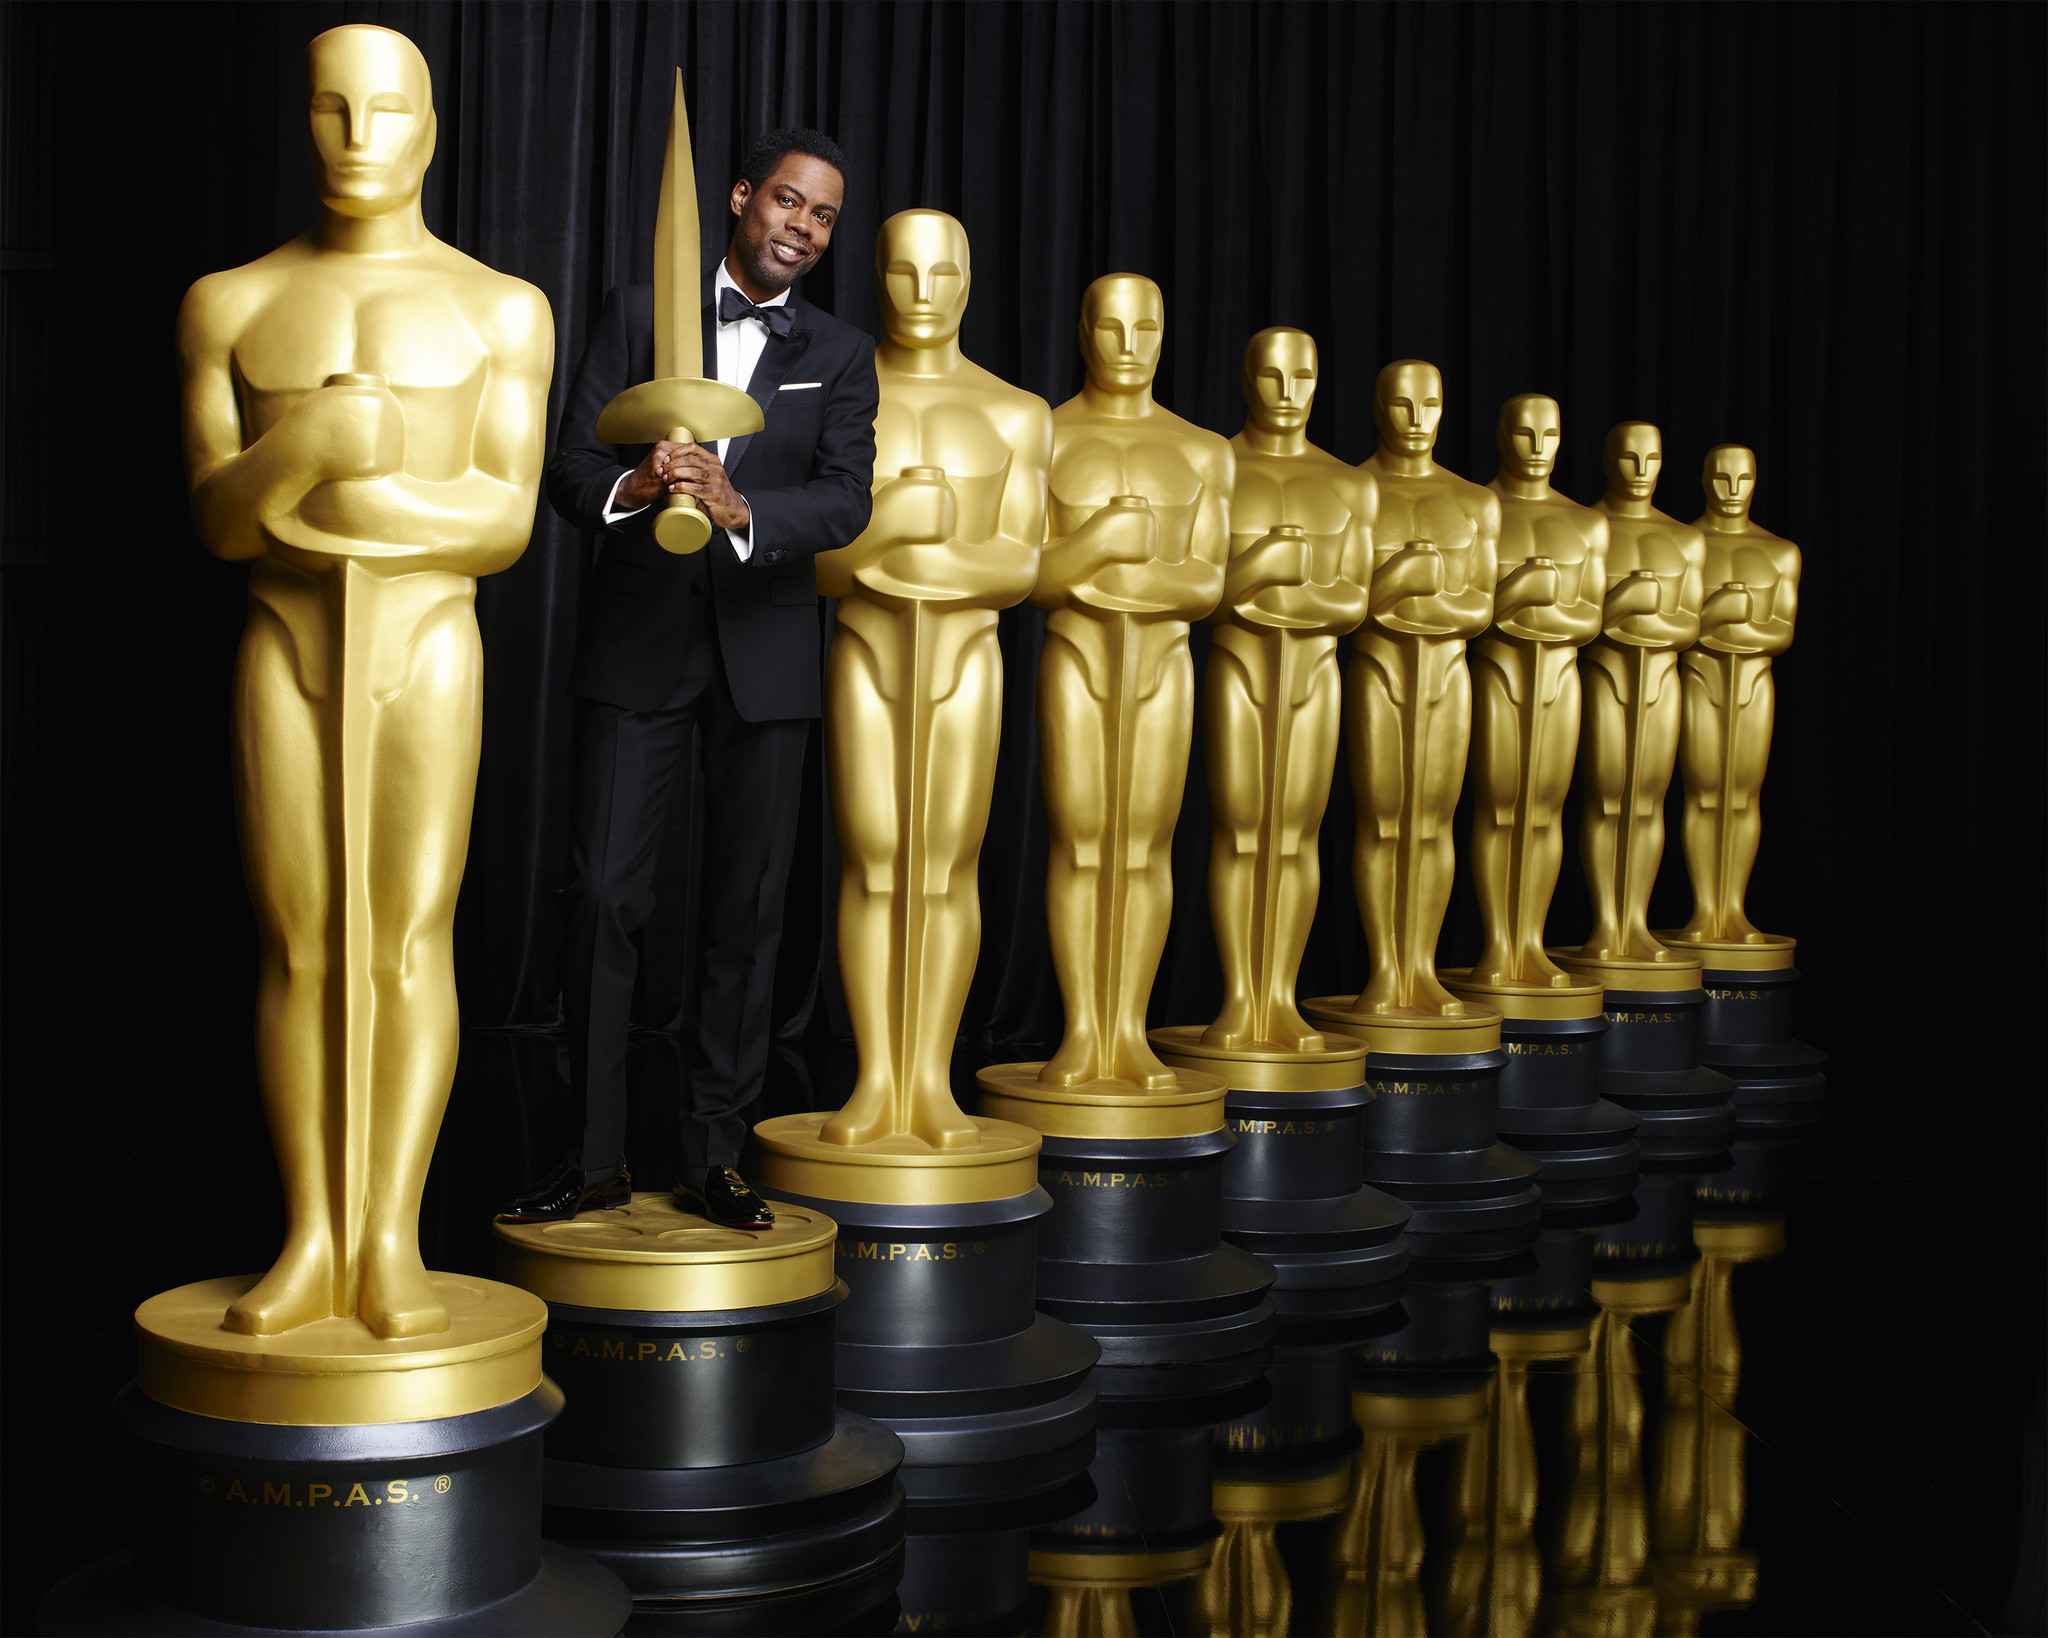 Os Oscar Award Or Agent Of Change 20160226 Story on real oscar trophy